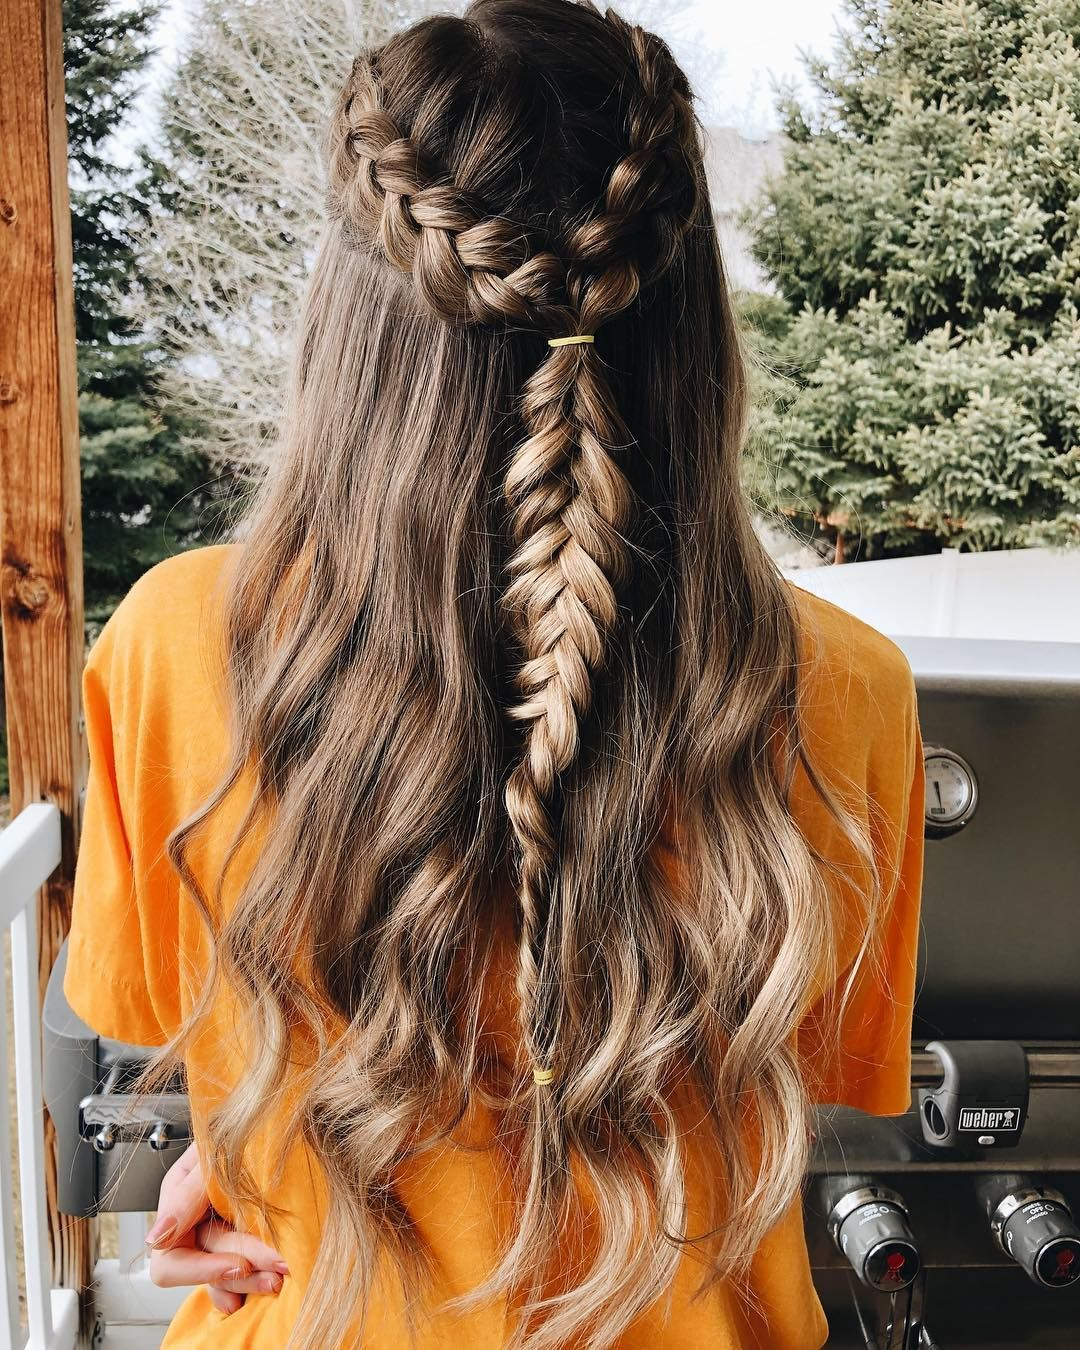 Cute Hairstyles On Instagram Dutch Braids Into Inside Out Fishtail Kinda Like Mine From Yest Fishtail Hairstyles Braids For Long Hair Curly Hair Trends